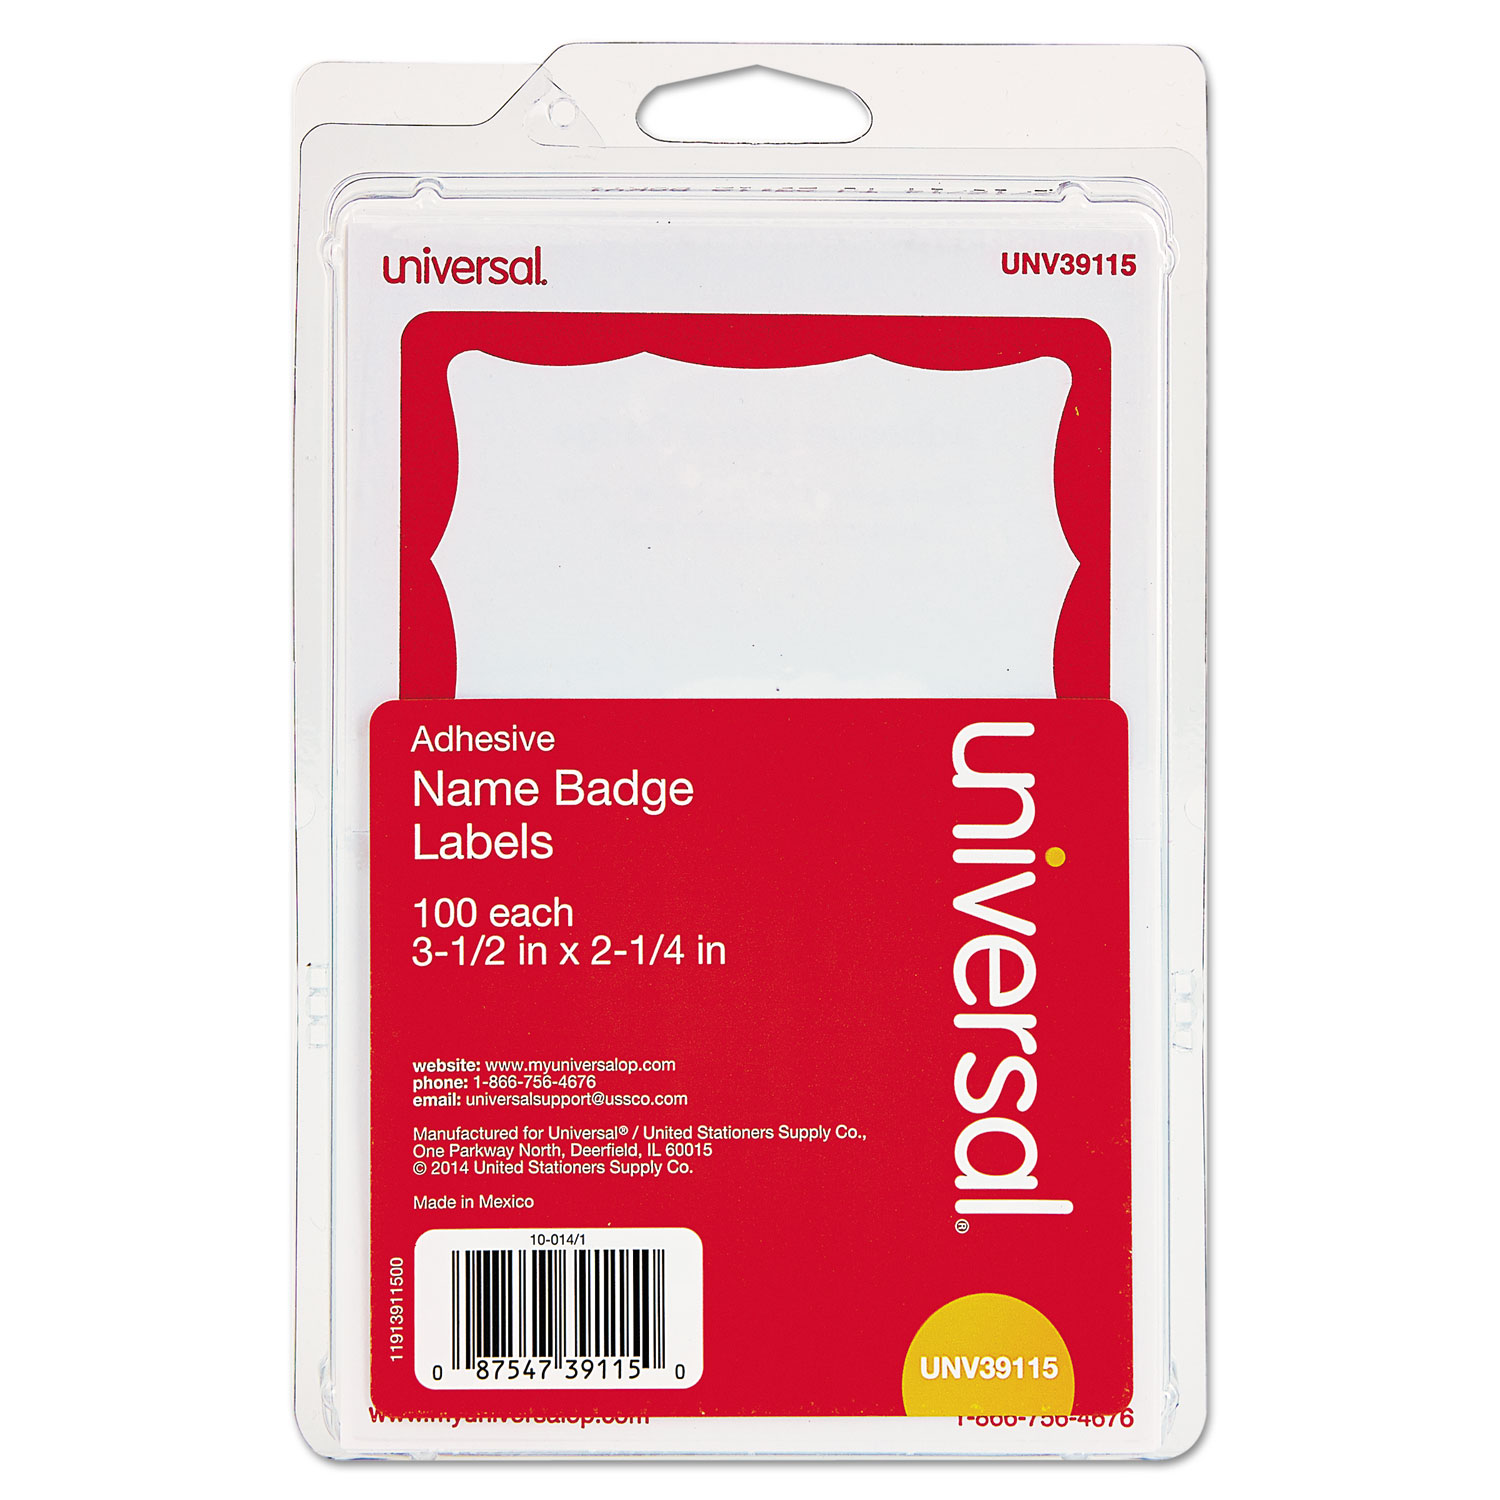 Border-Style Self-Adhesive Name Badges, 3 1/2 x 2 1/4, White/Red, 100/Pack